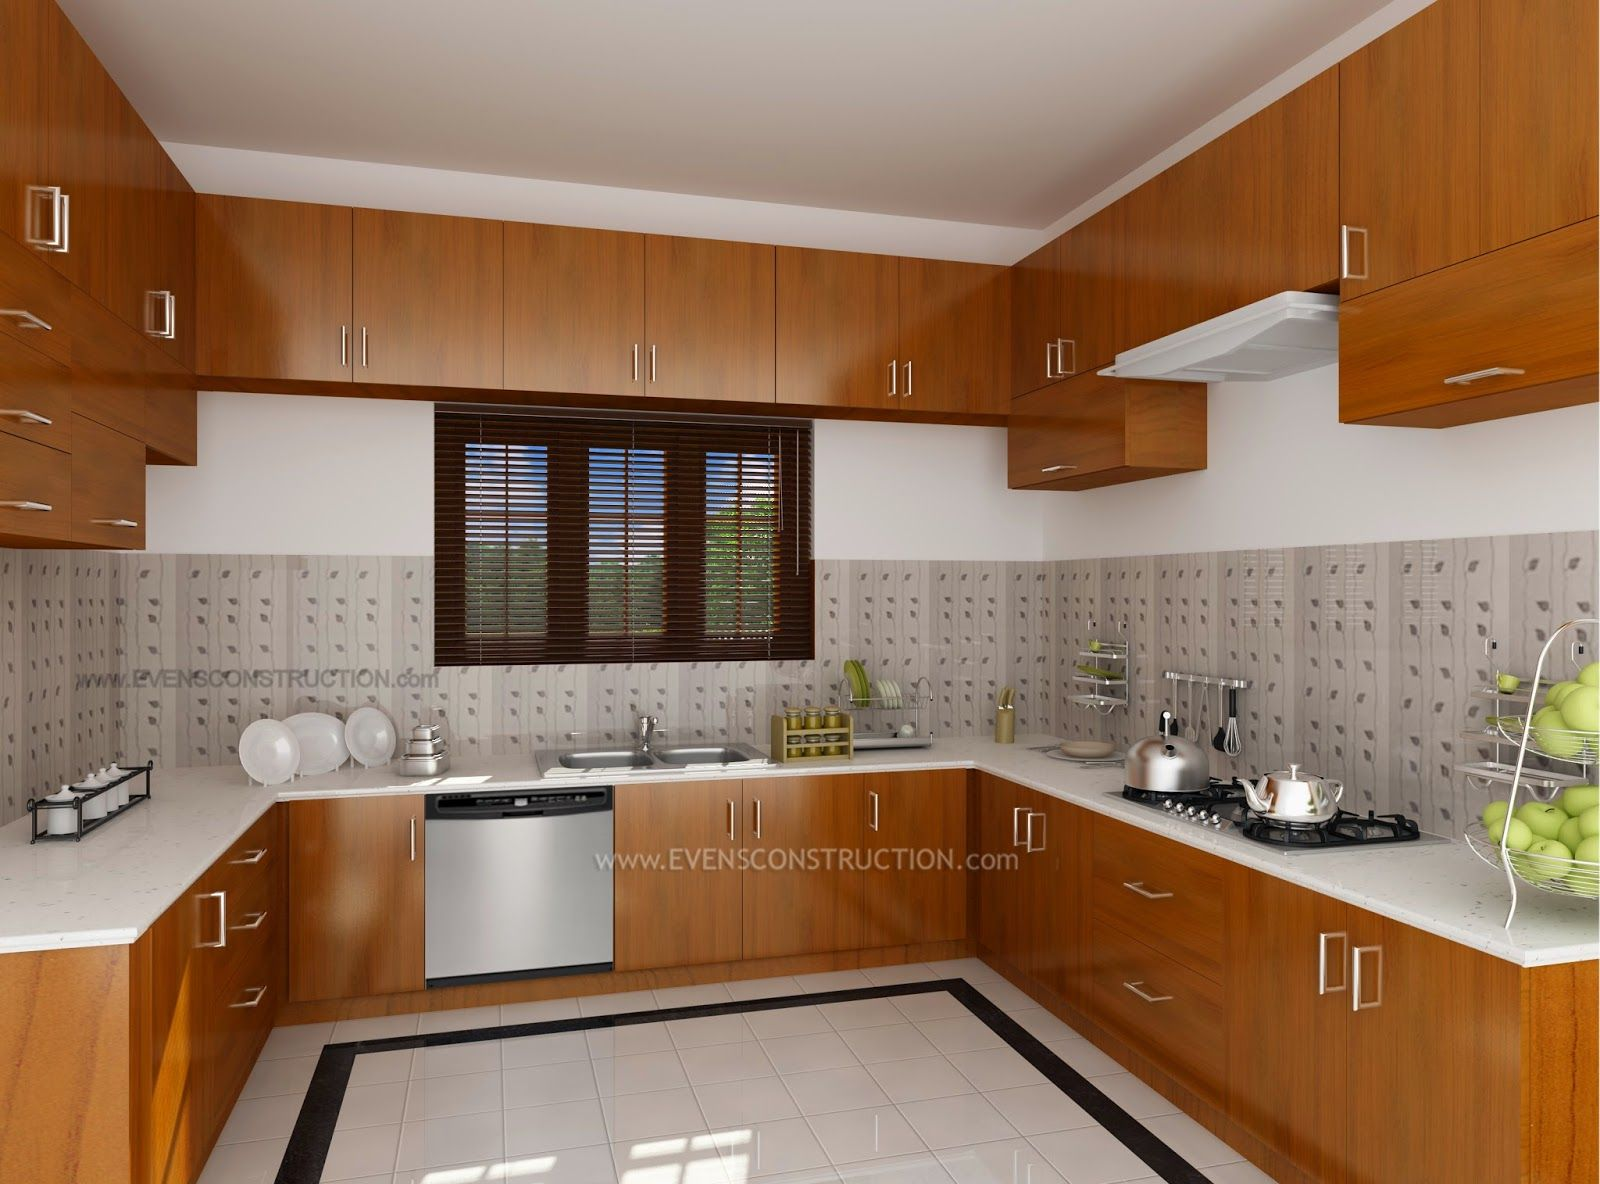 Kerala Kitchen Interior Design Modular Views Ss Architects Cochin Home